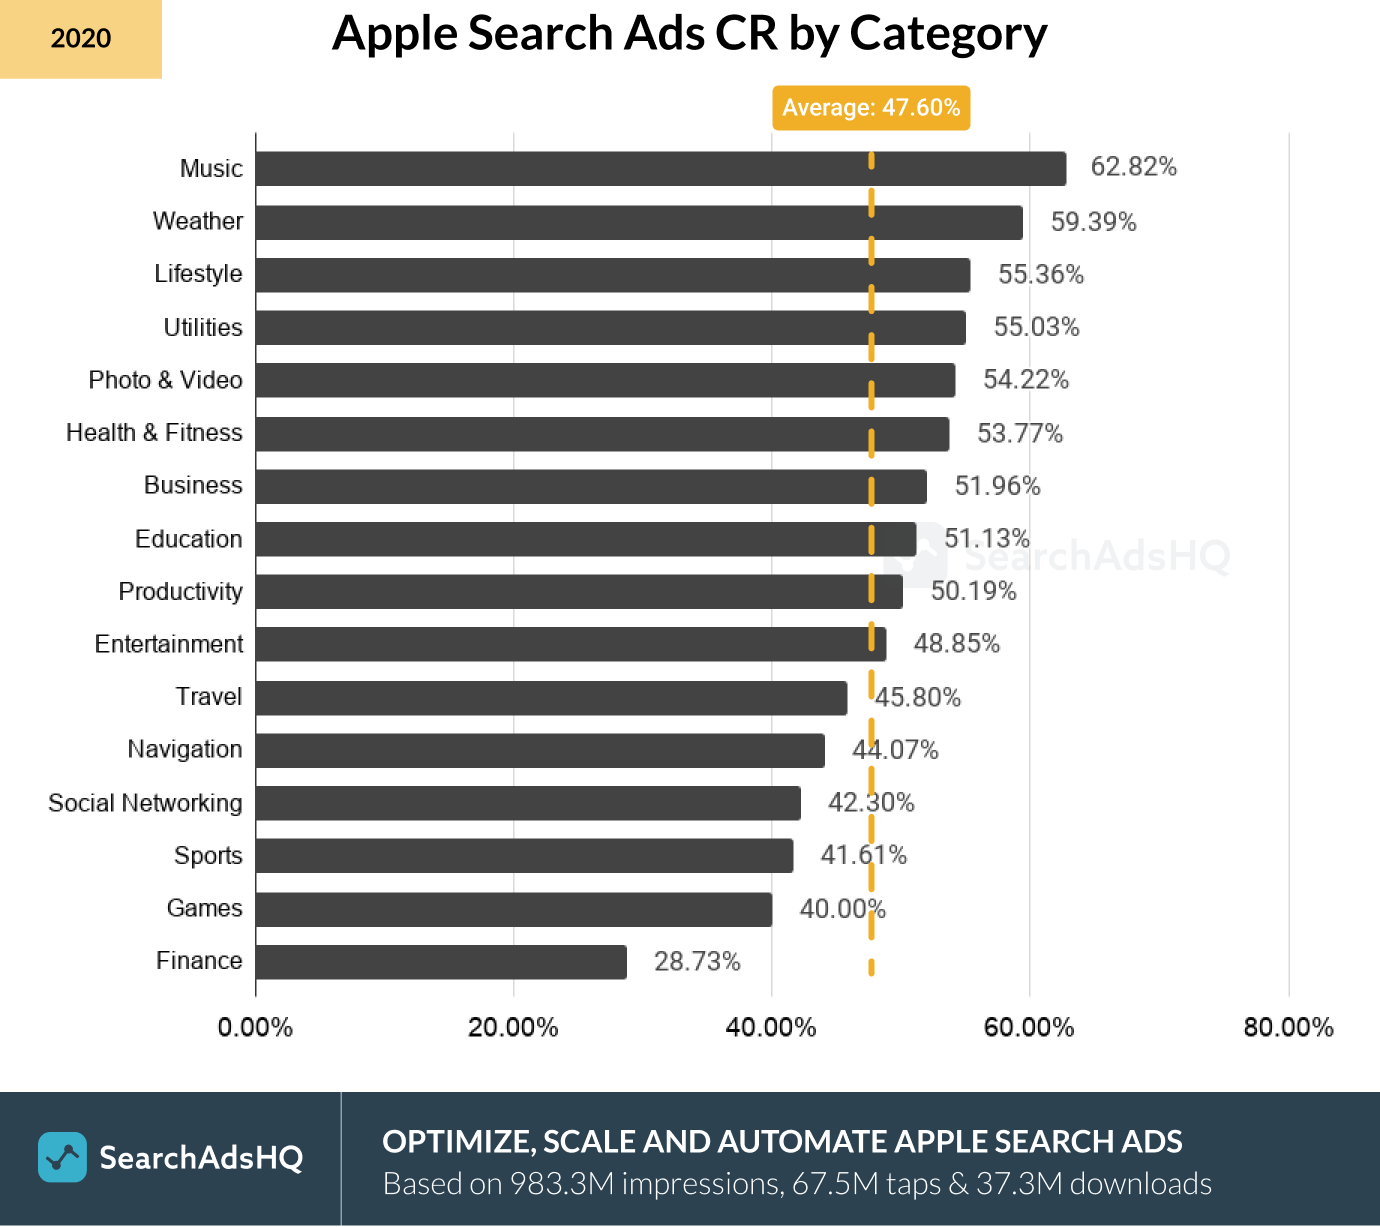 Apple Search Ads CR by Category_2020